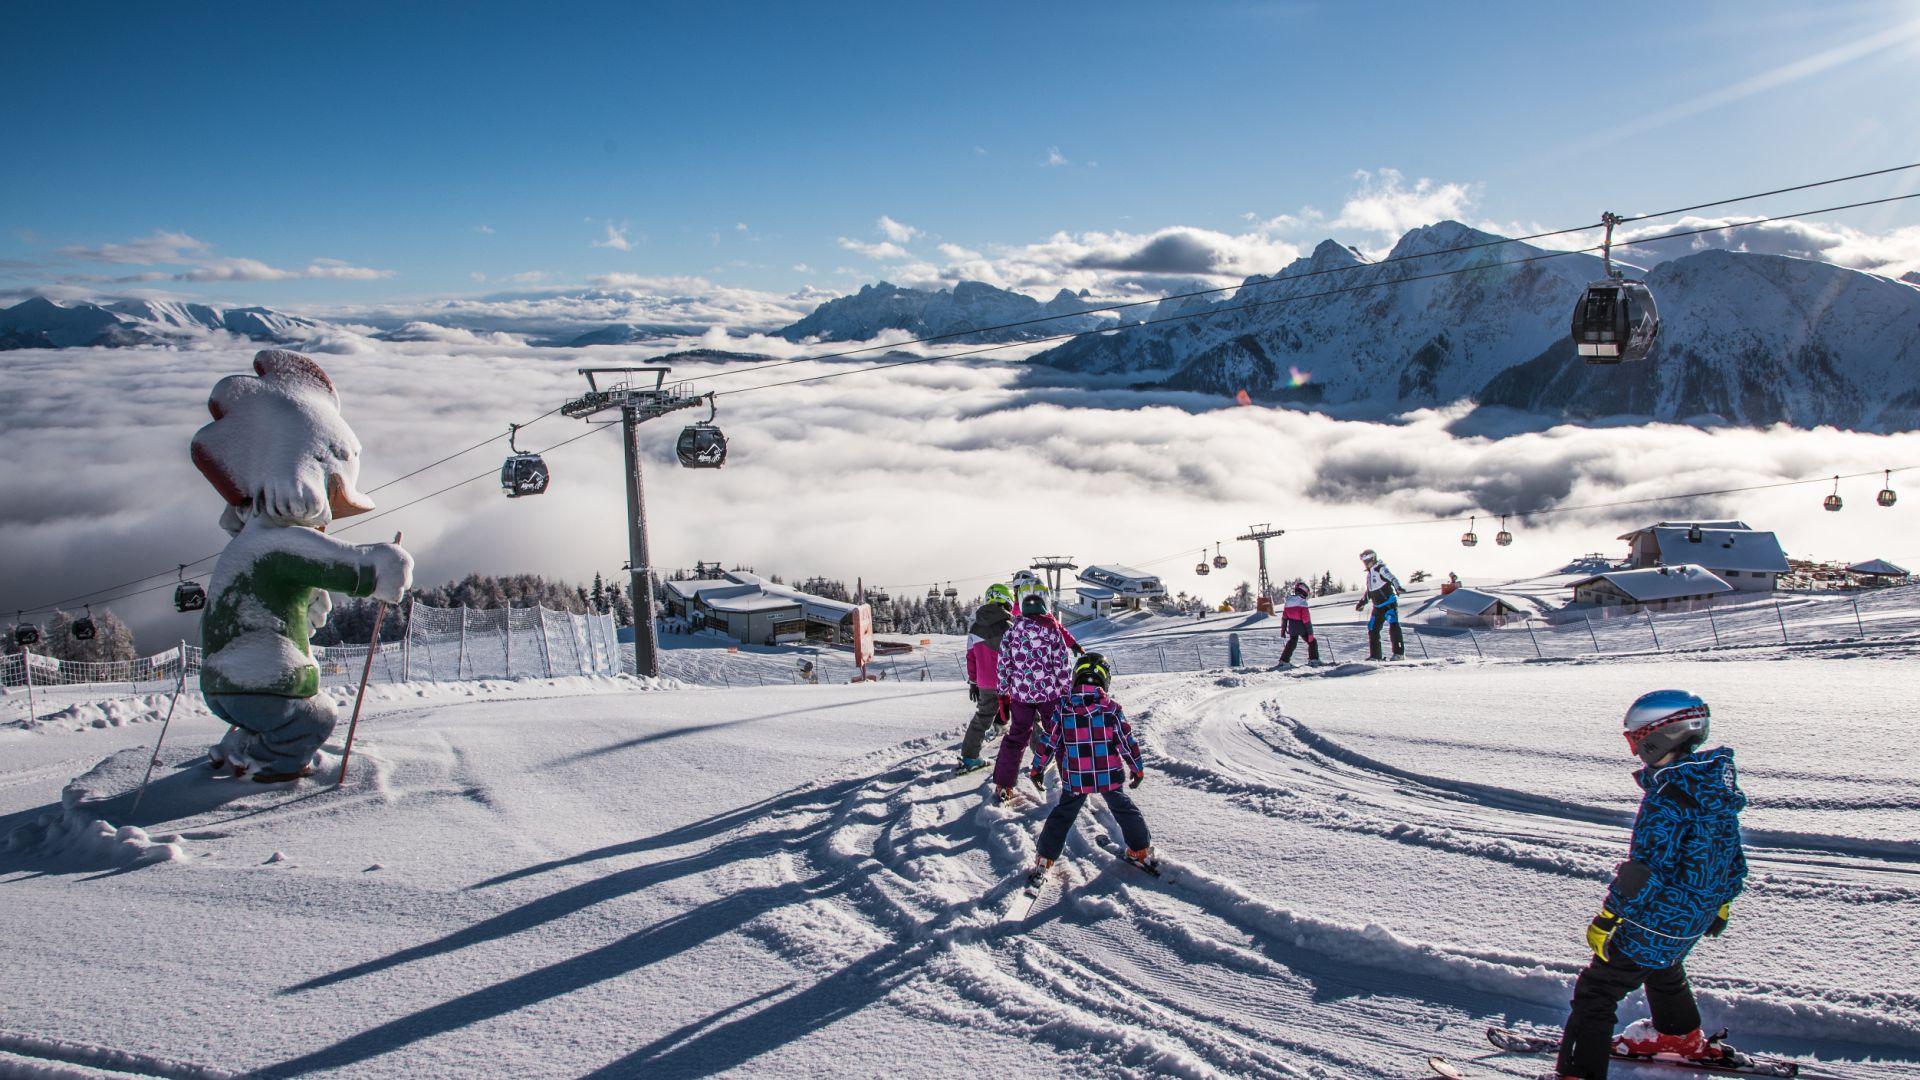 Image: Skiing at Kronplatz